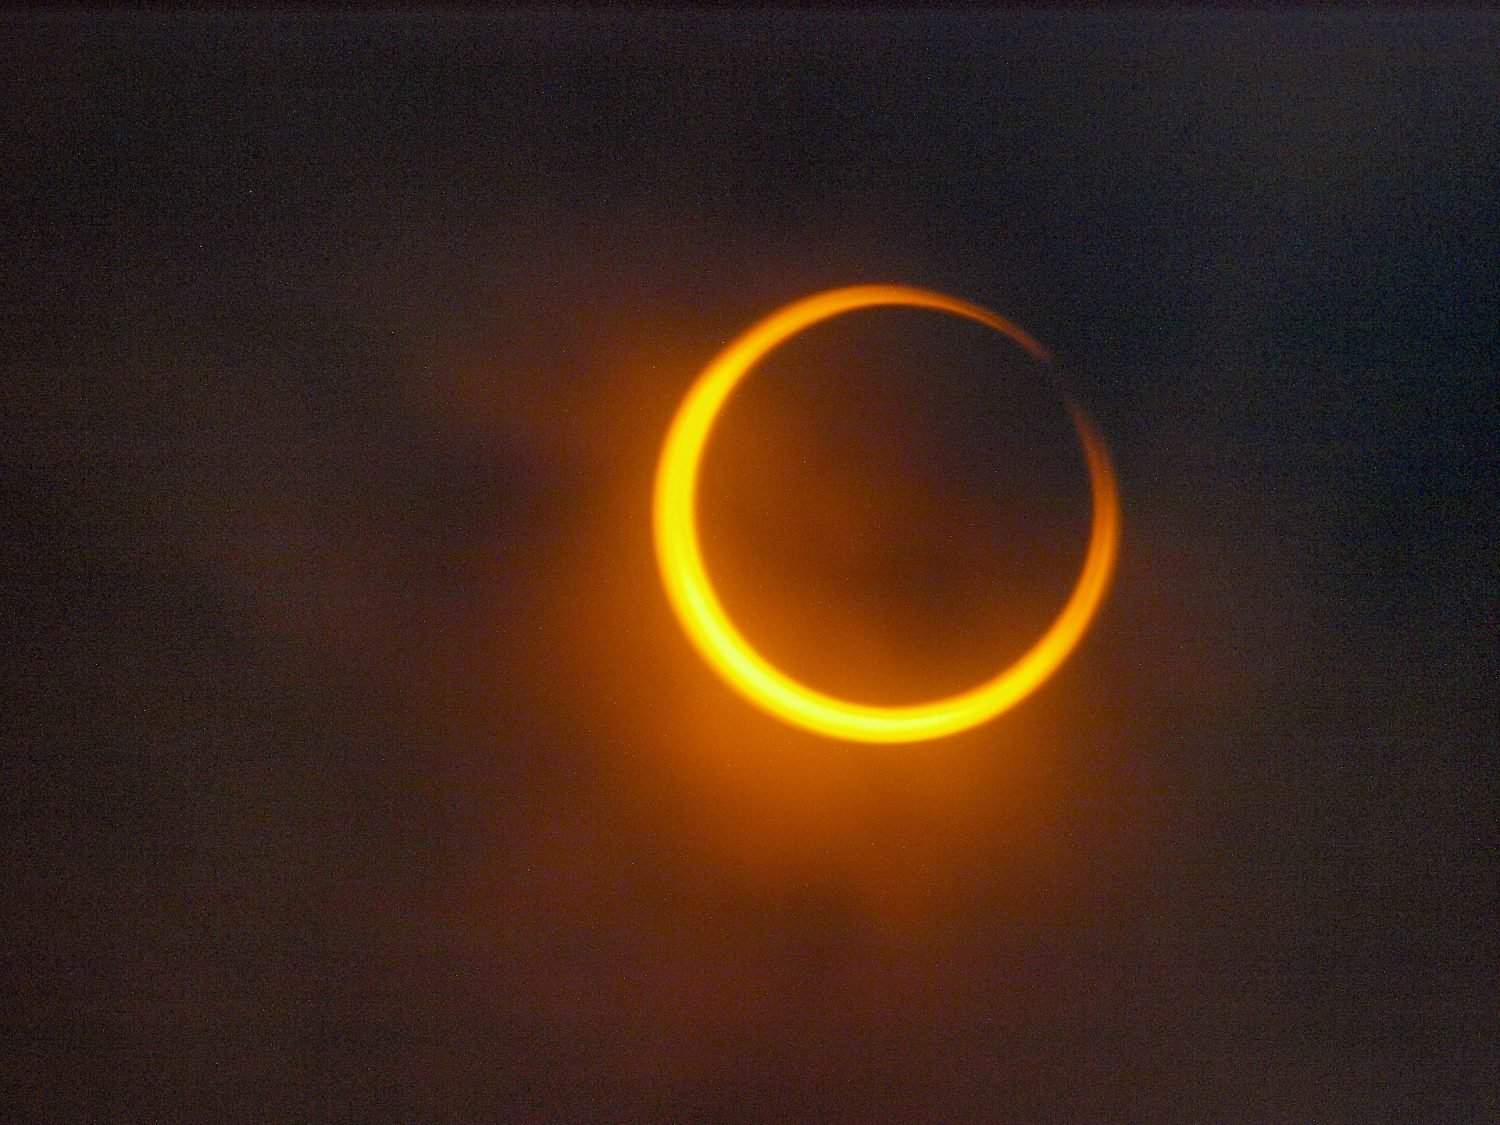 Annular Solar Eclipse - Pixabay